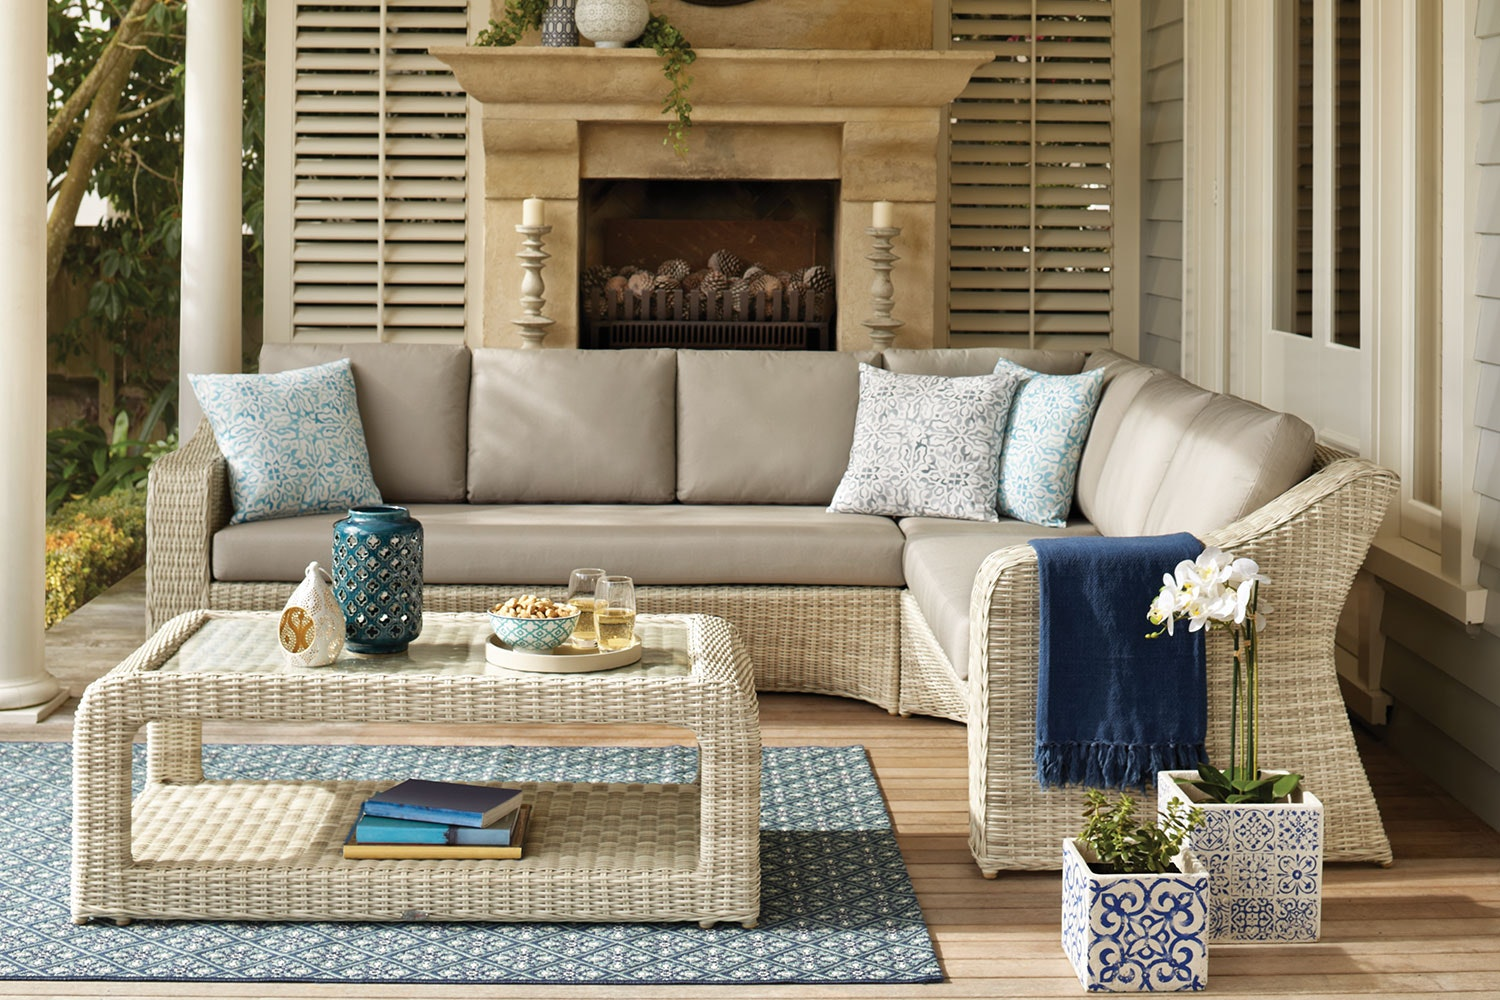 Sicily Outdoor Corner Lounge Setting